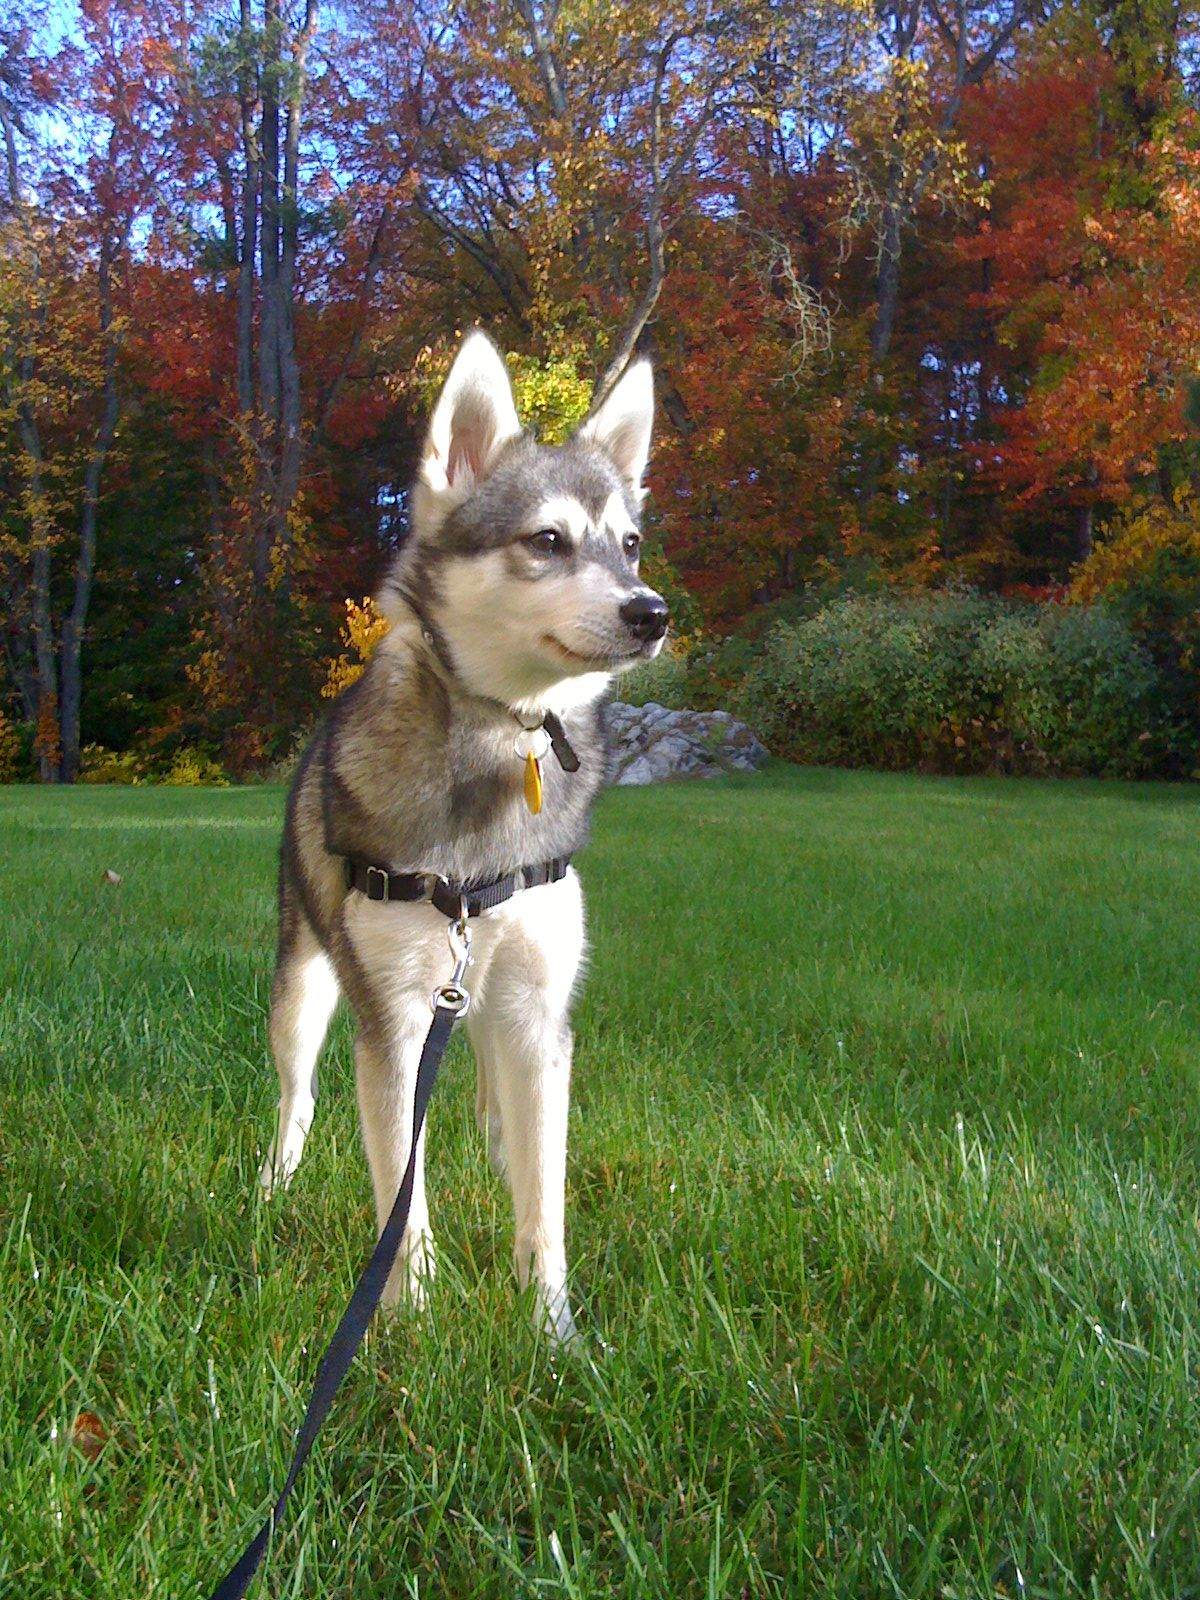 Wellpets The Alaskan Klee Kai Originates From Wasilla Alaska And